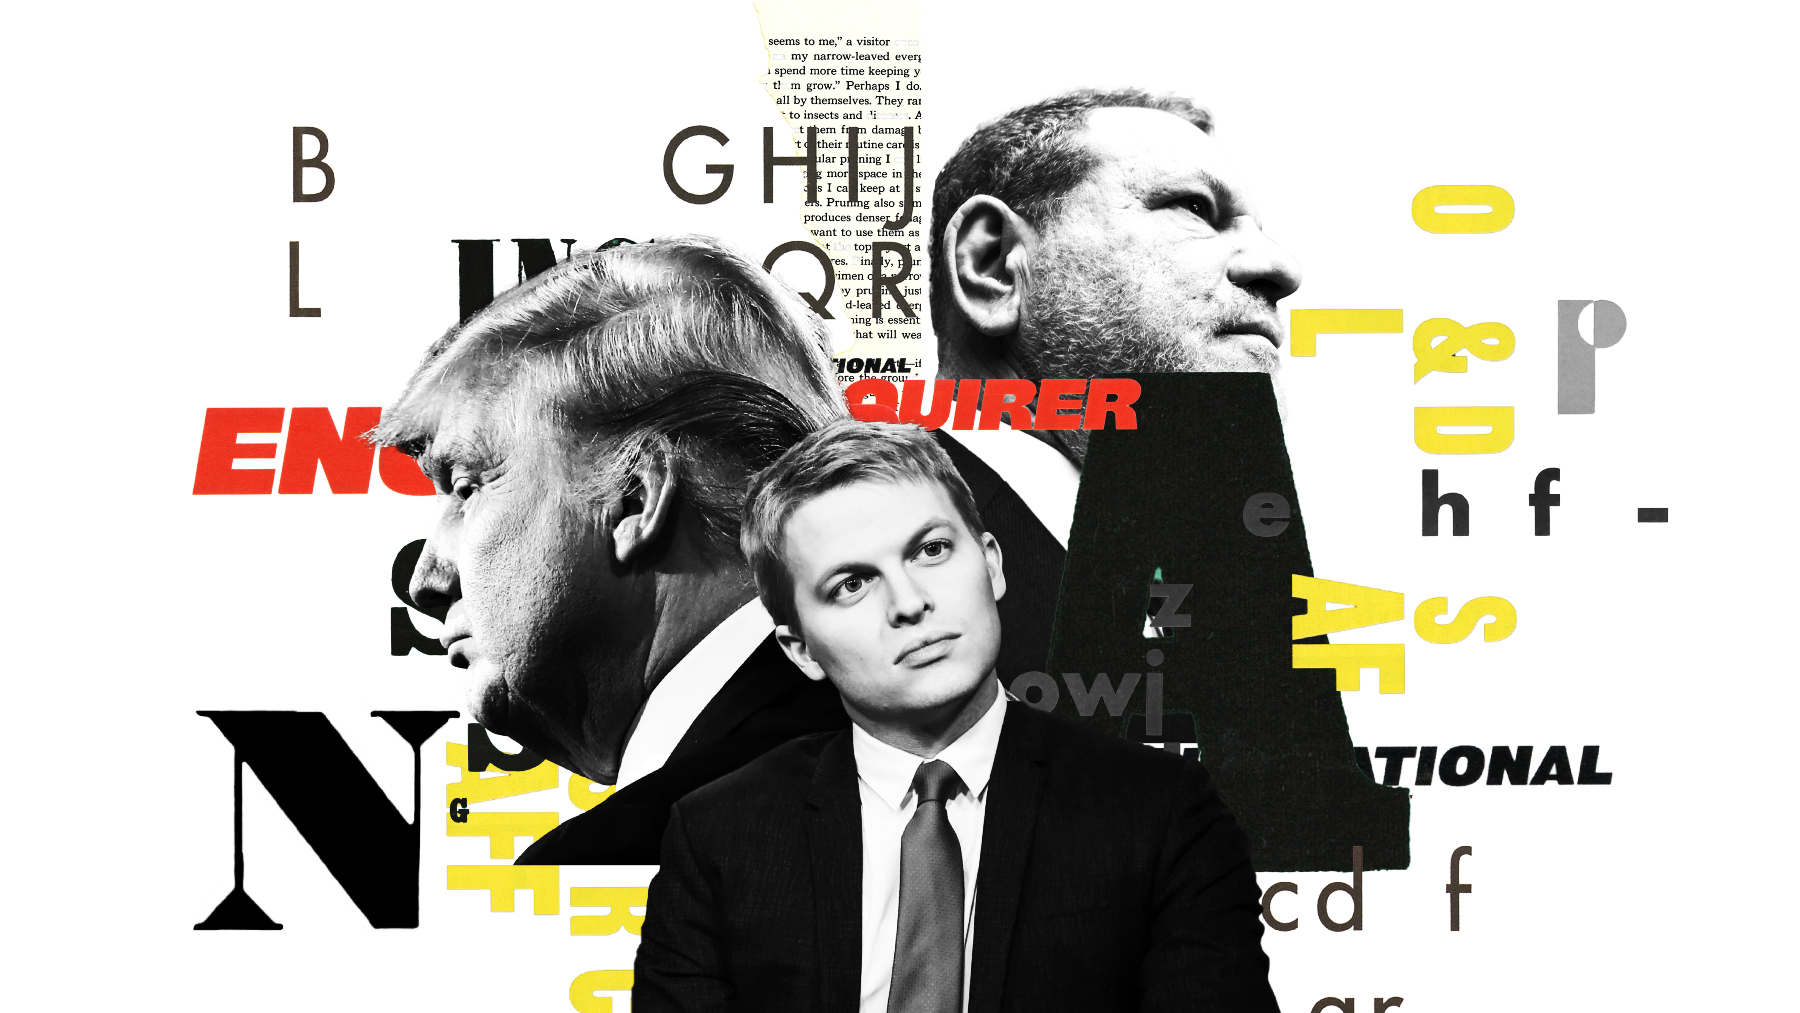 An illustration featuring President Donald Trump, Ronan Farrow, and Harvey Weinstein.